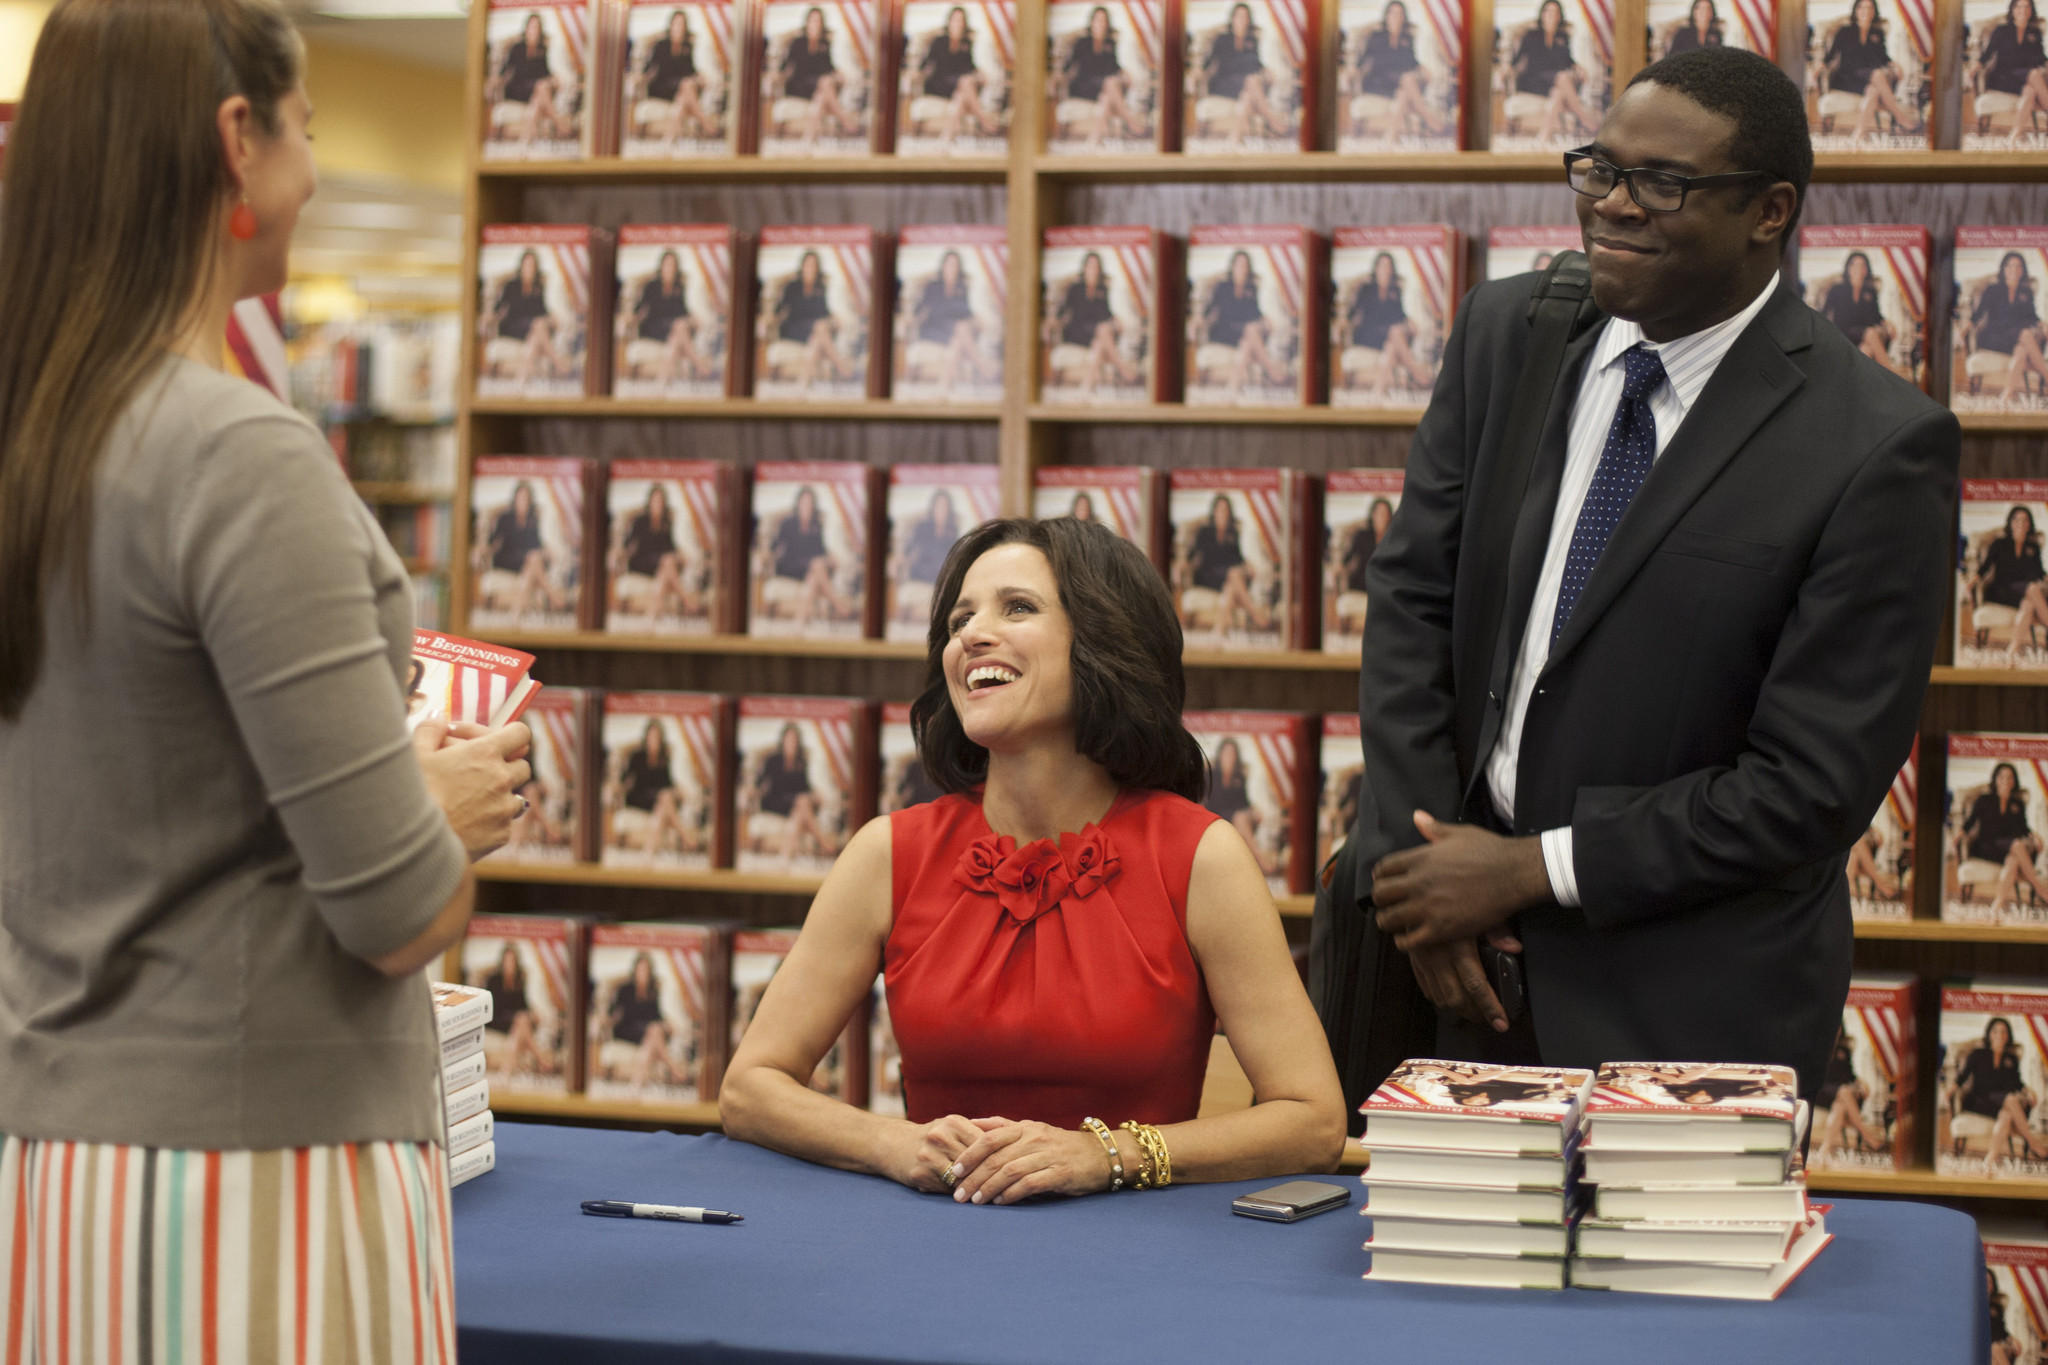 bal-veep-hits-higher-gear-hbo-season-3-2014040-001